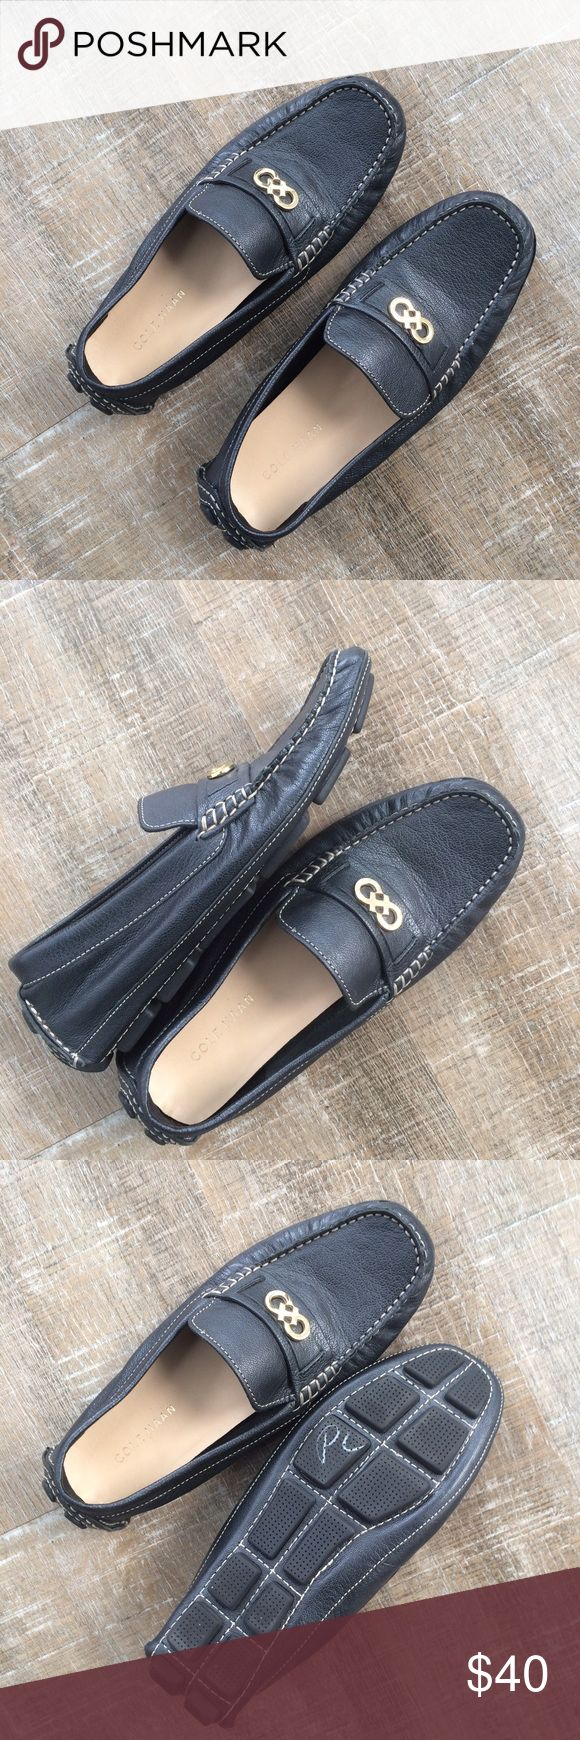 NWOT! Cole Haan leather drivers Never worn! NWOT Cope Haan leather drivers (loafers). Size 7.5 B (normal width). Color is between black and navy, so they can go with either! Offers welcome! Cole Haan Shoes Flats & Loafers